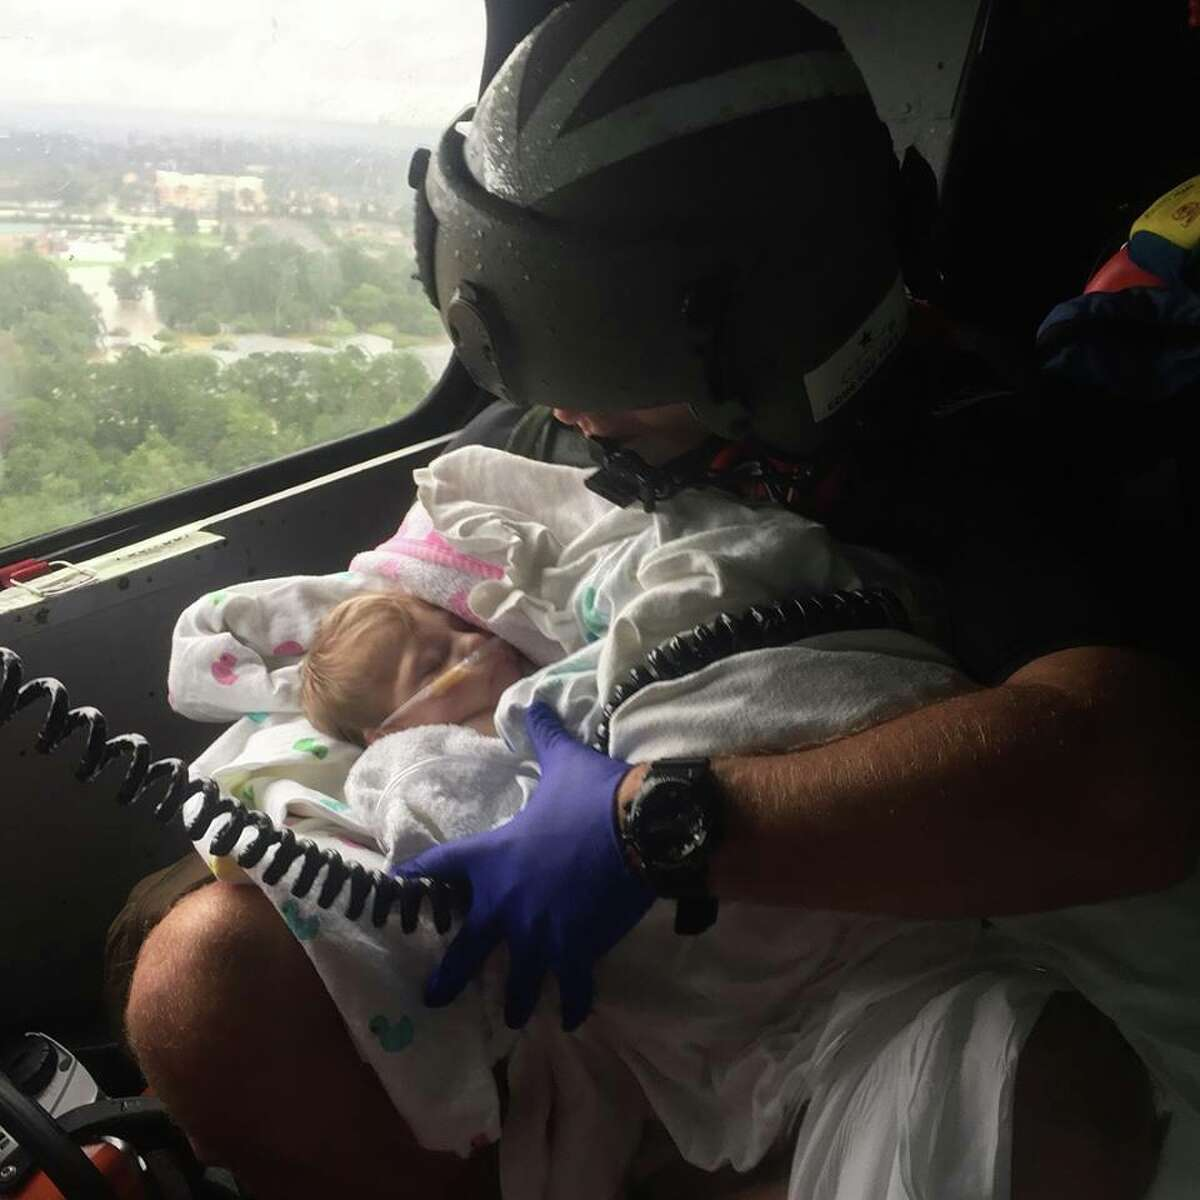 A U.S. Coast Guard aircrew assist infant during the aftermath of Hurricane Harvey in the greater Houston Metro Area. Swipe through to see other photos of Texans being saved during Harvey.